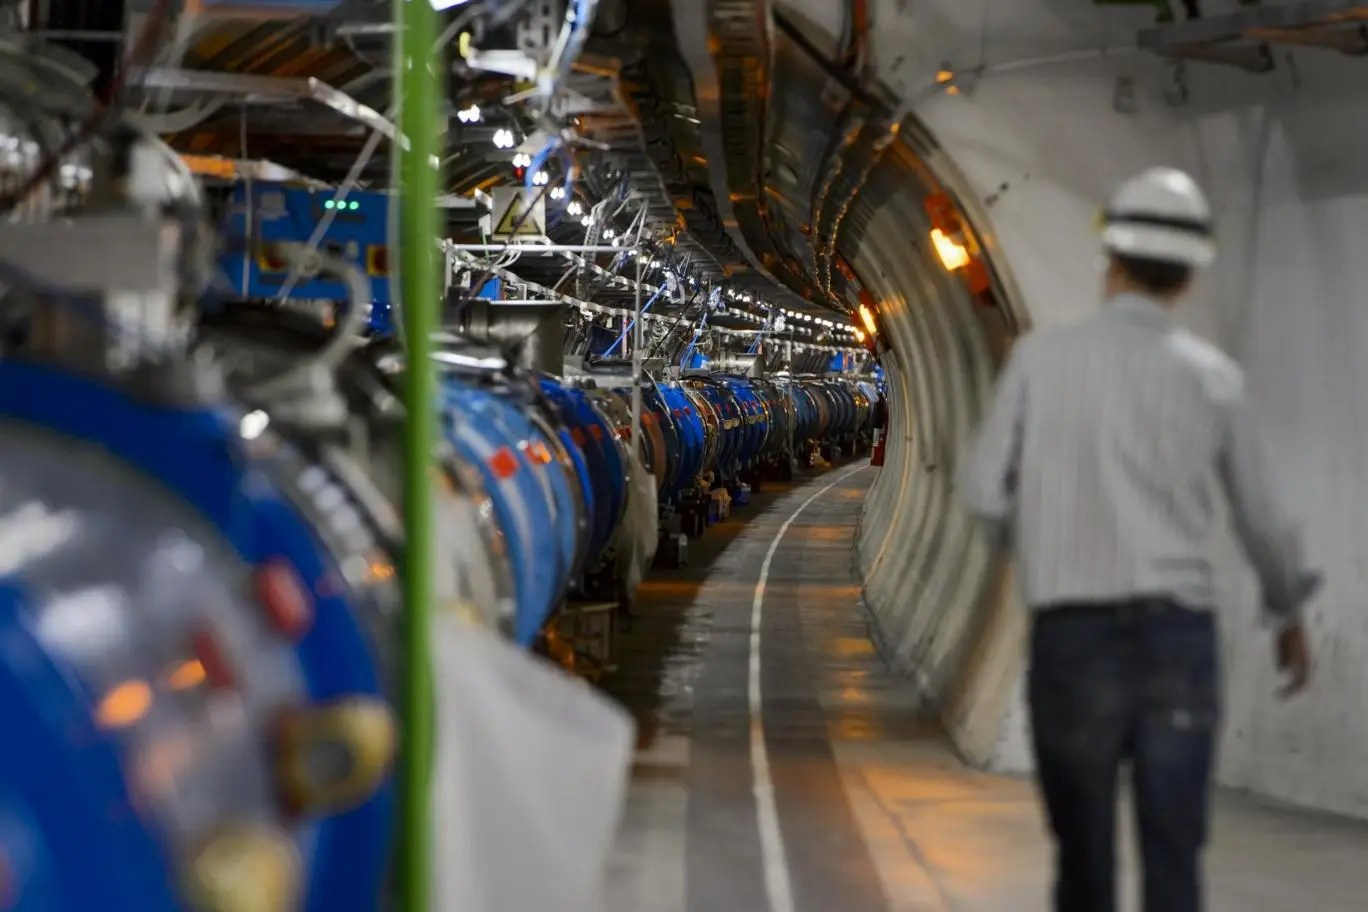 A scientist walks along a tunnel containing the Large Hadron Collider